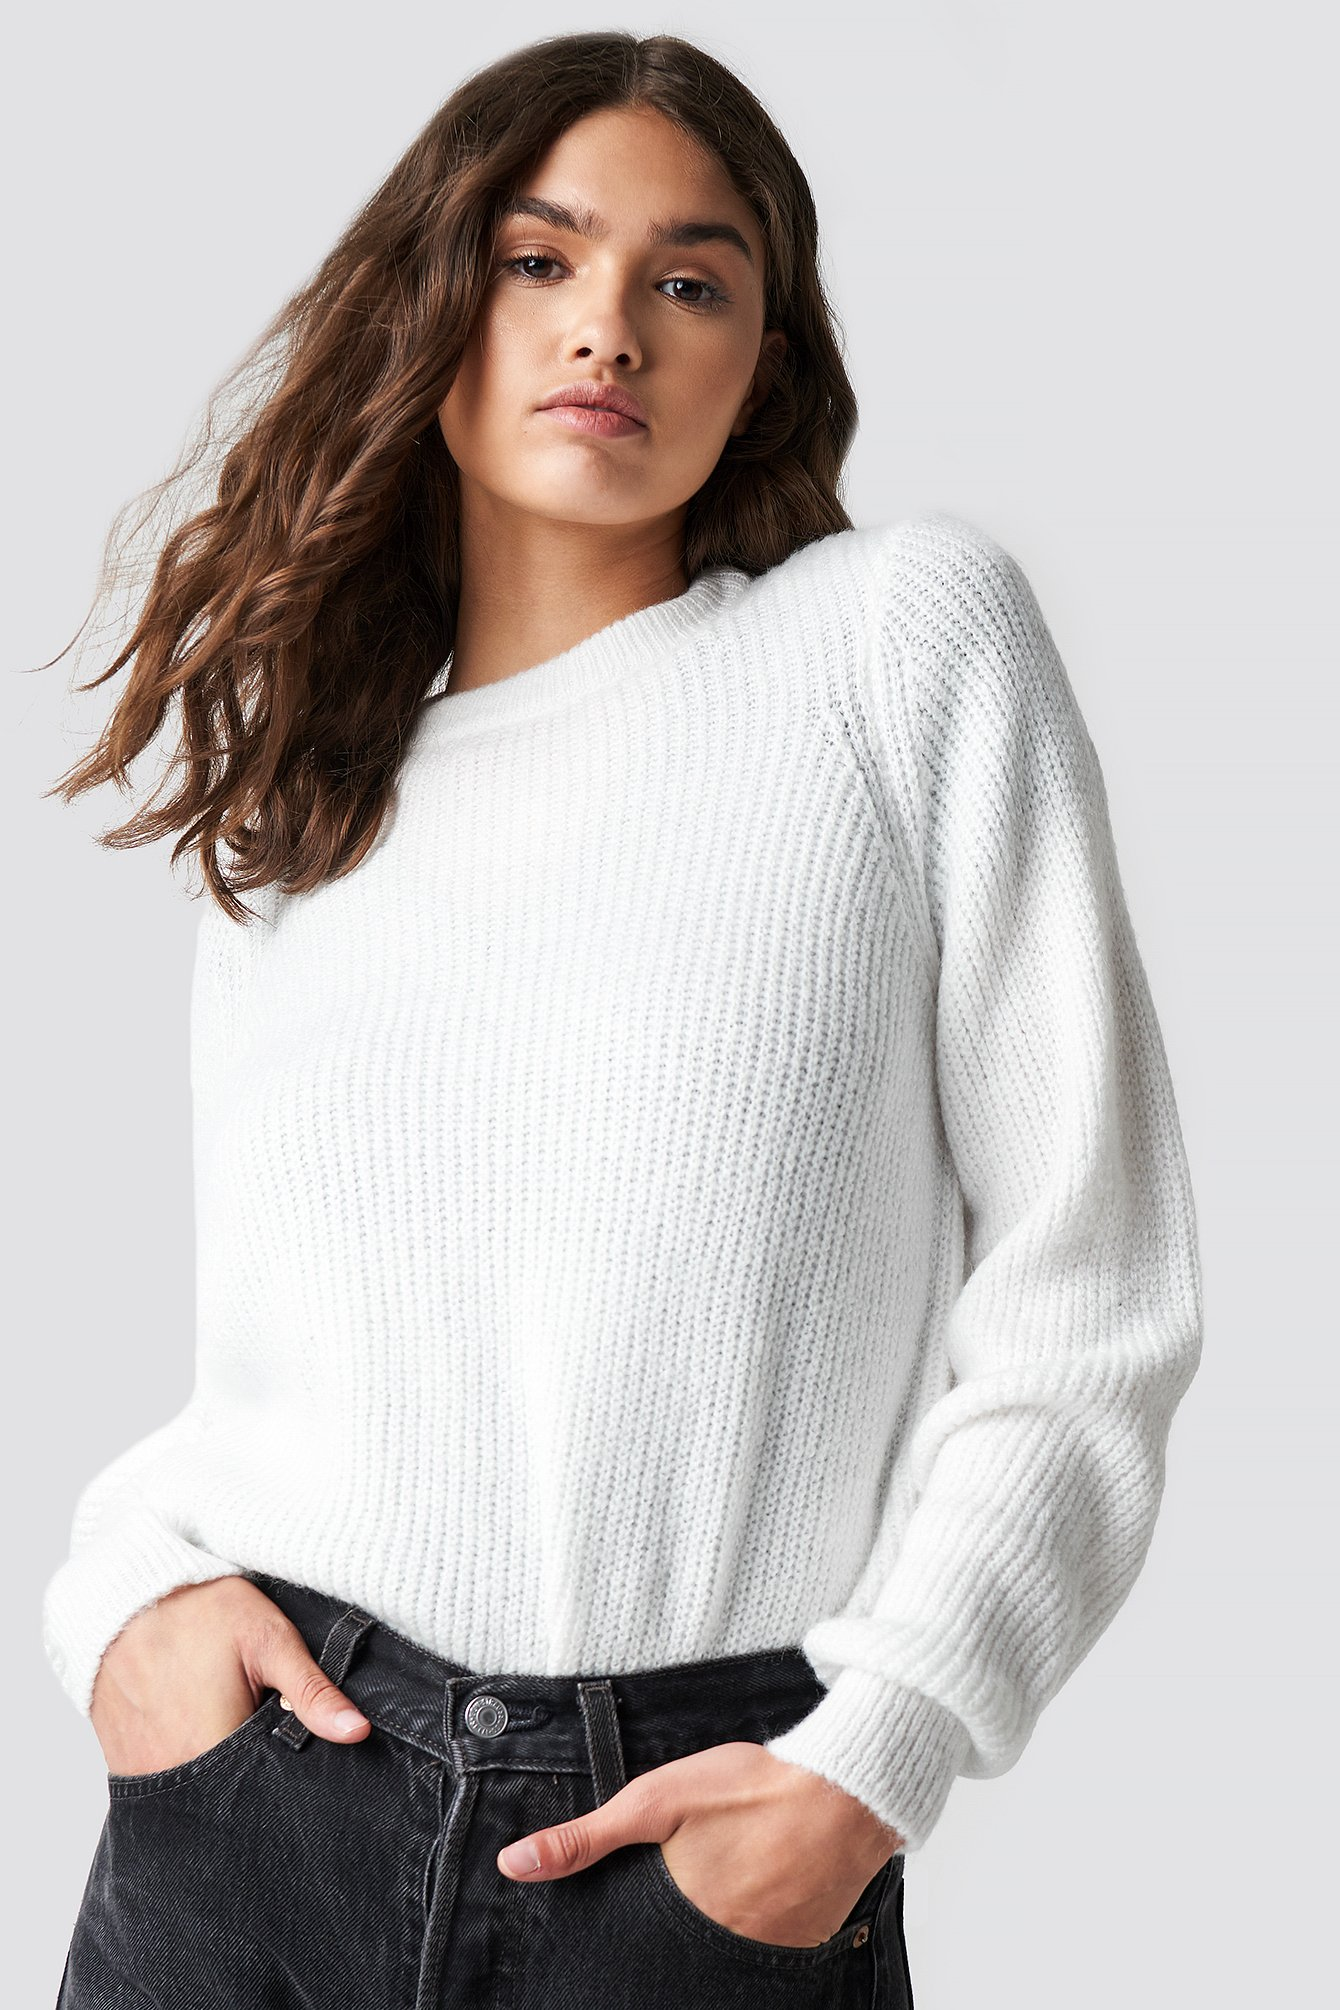 Crew Neck Knitted Sweater Vit by Na Kd